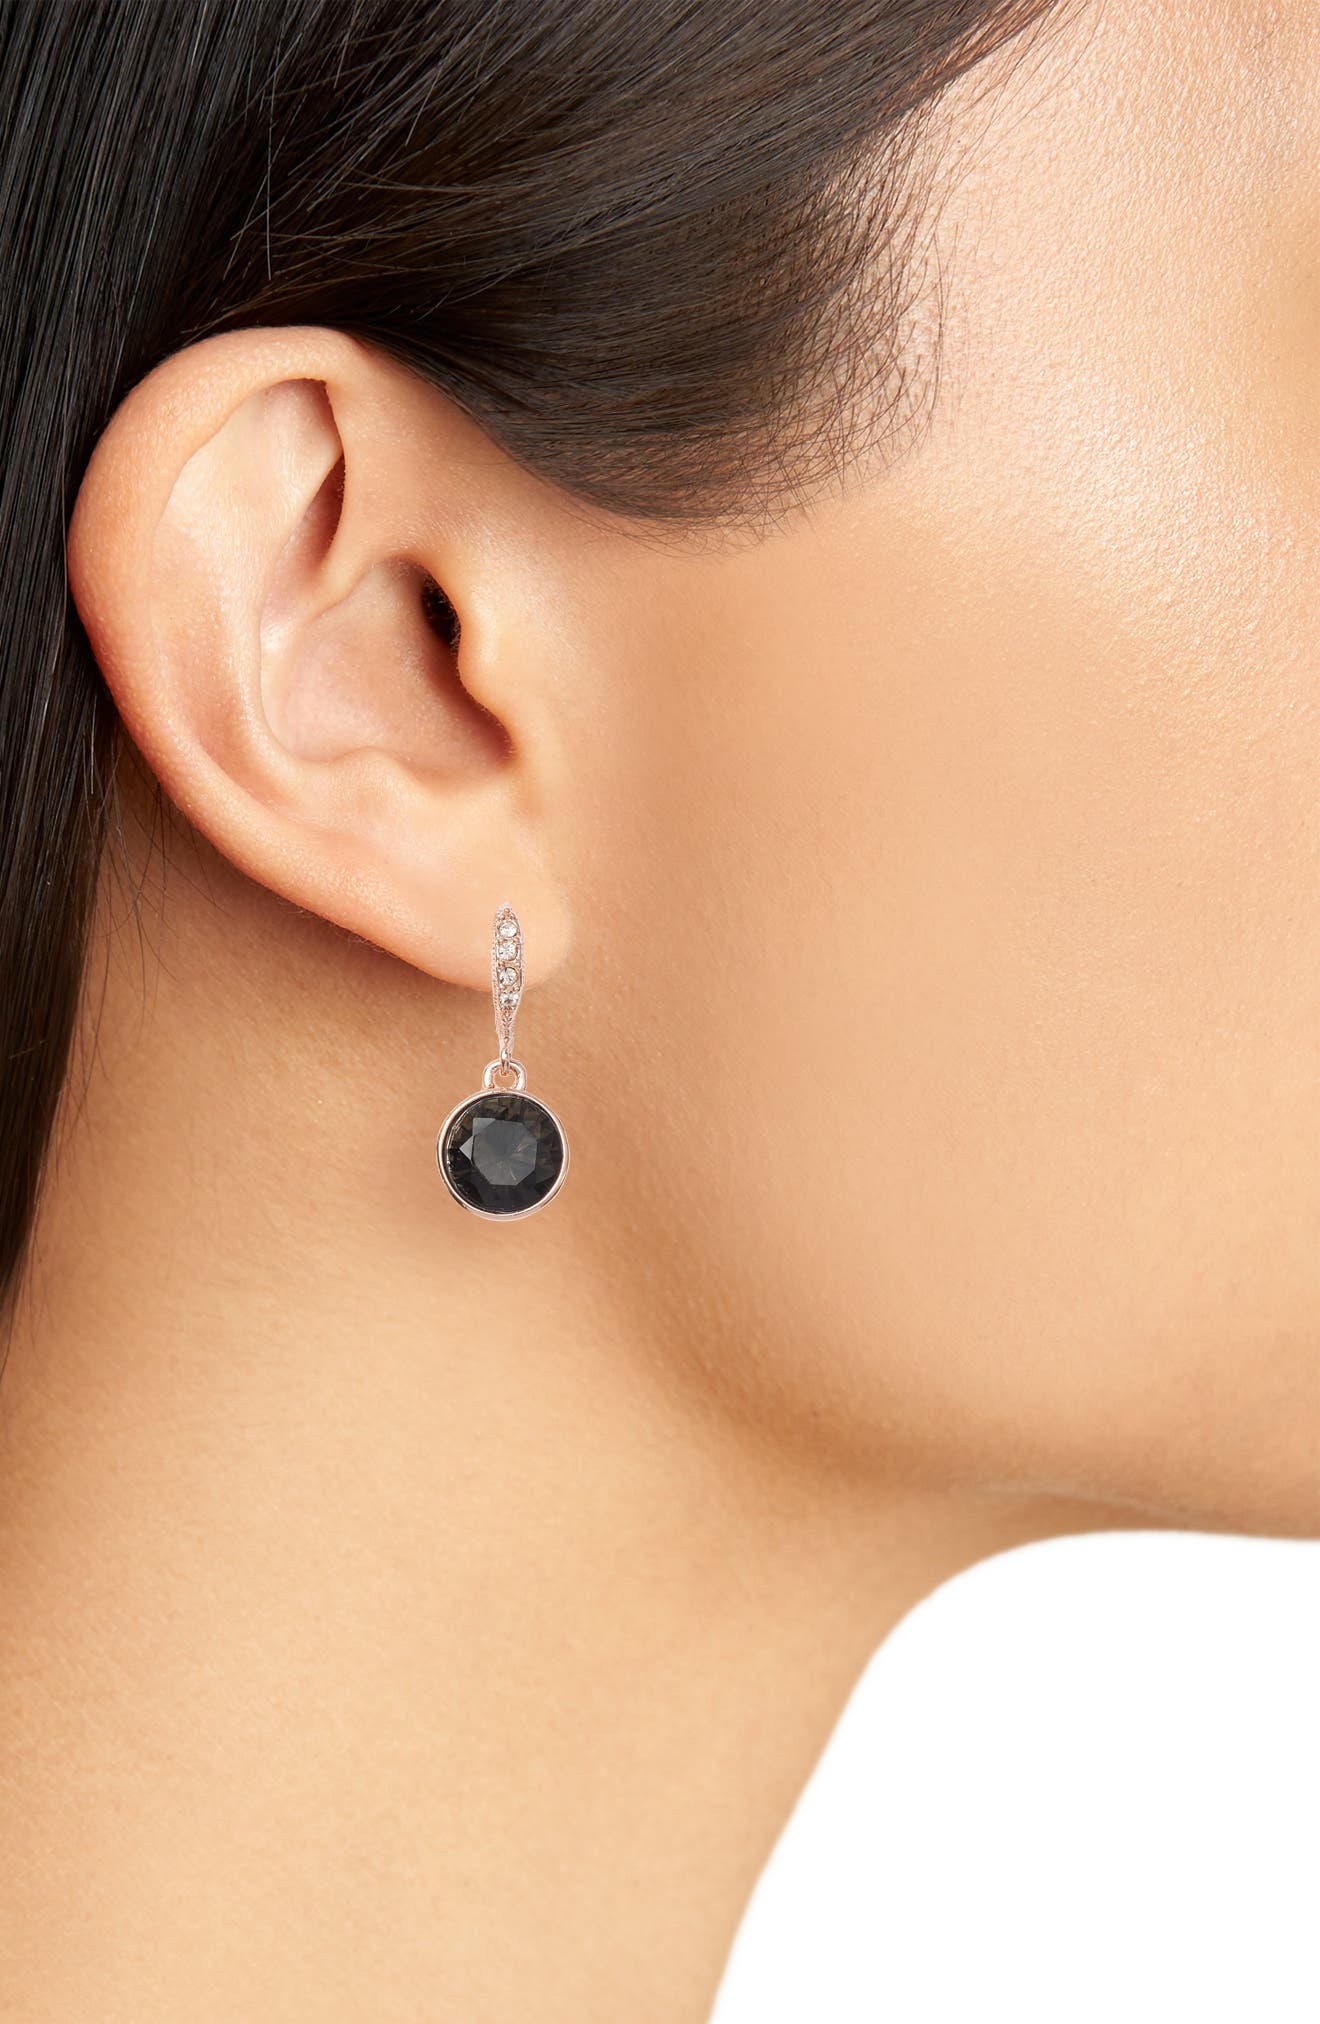 Round Drop Earrings,                             Alternate thumbnail 2, color,                             020